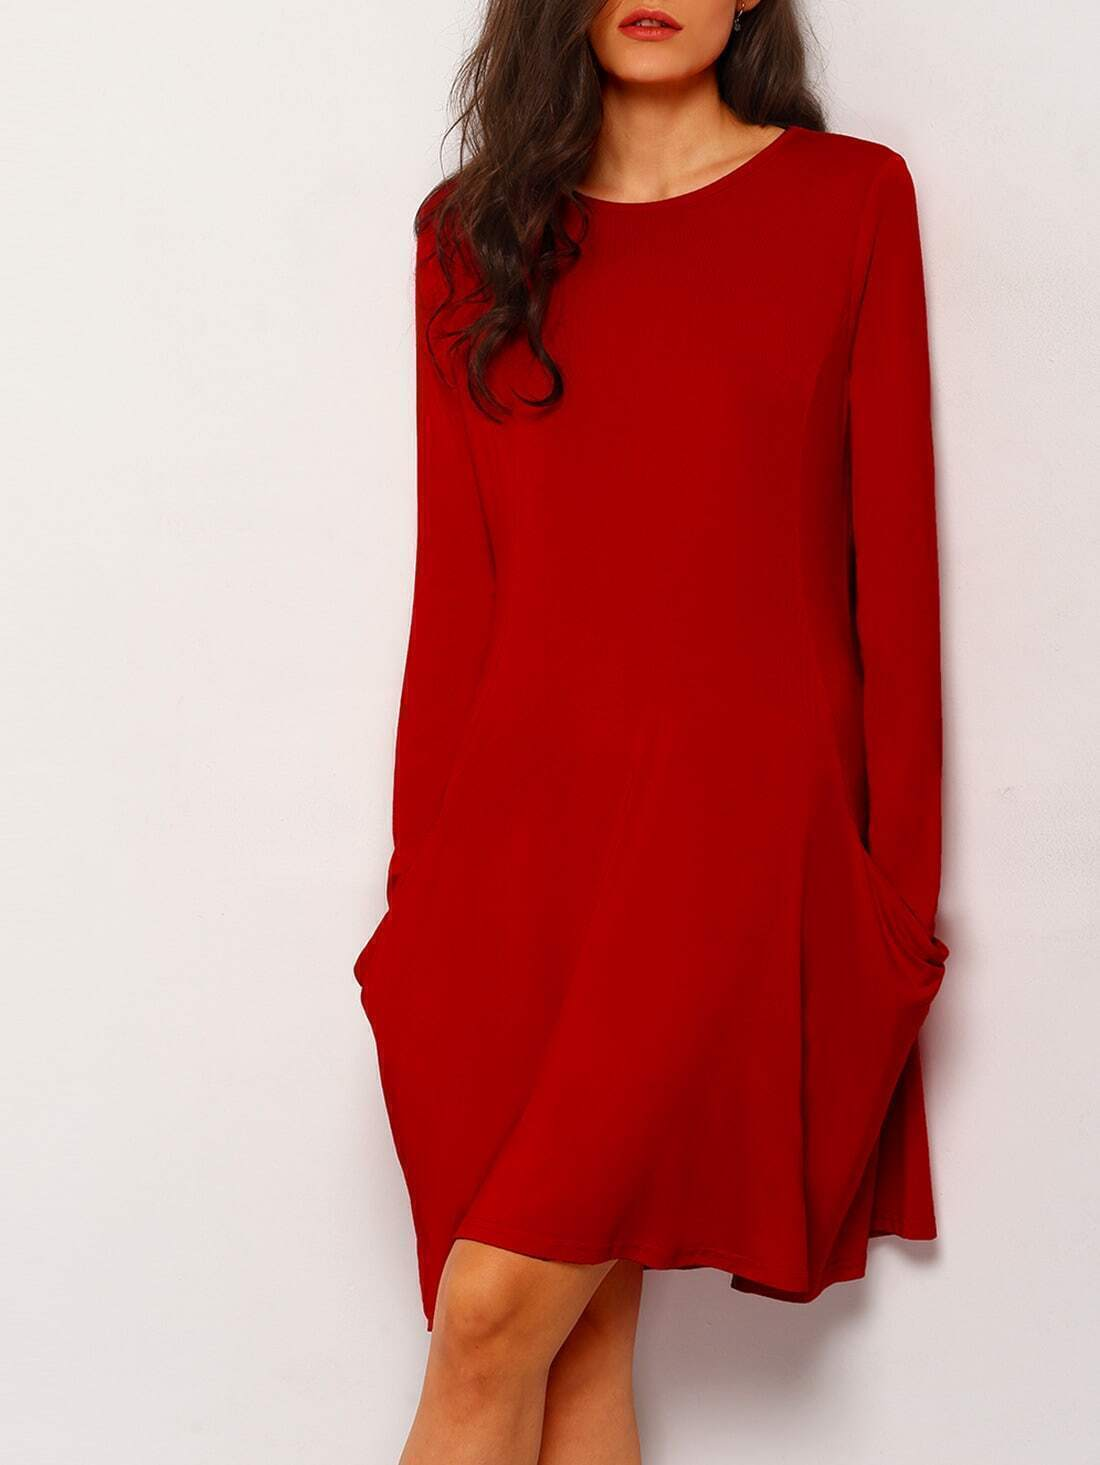 Robe d contract manches longues avec poches rouge french for Interieur paupiere inferieure rouge